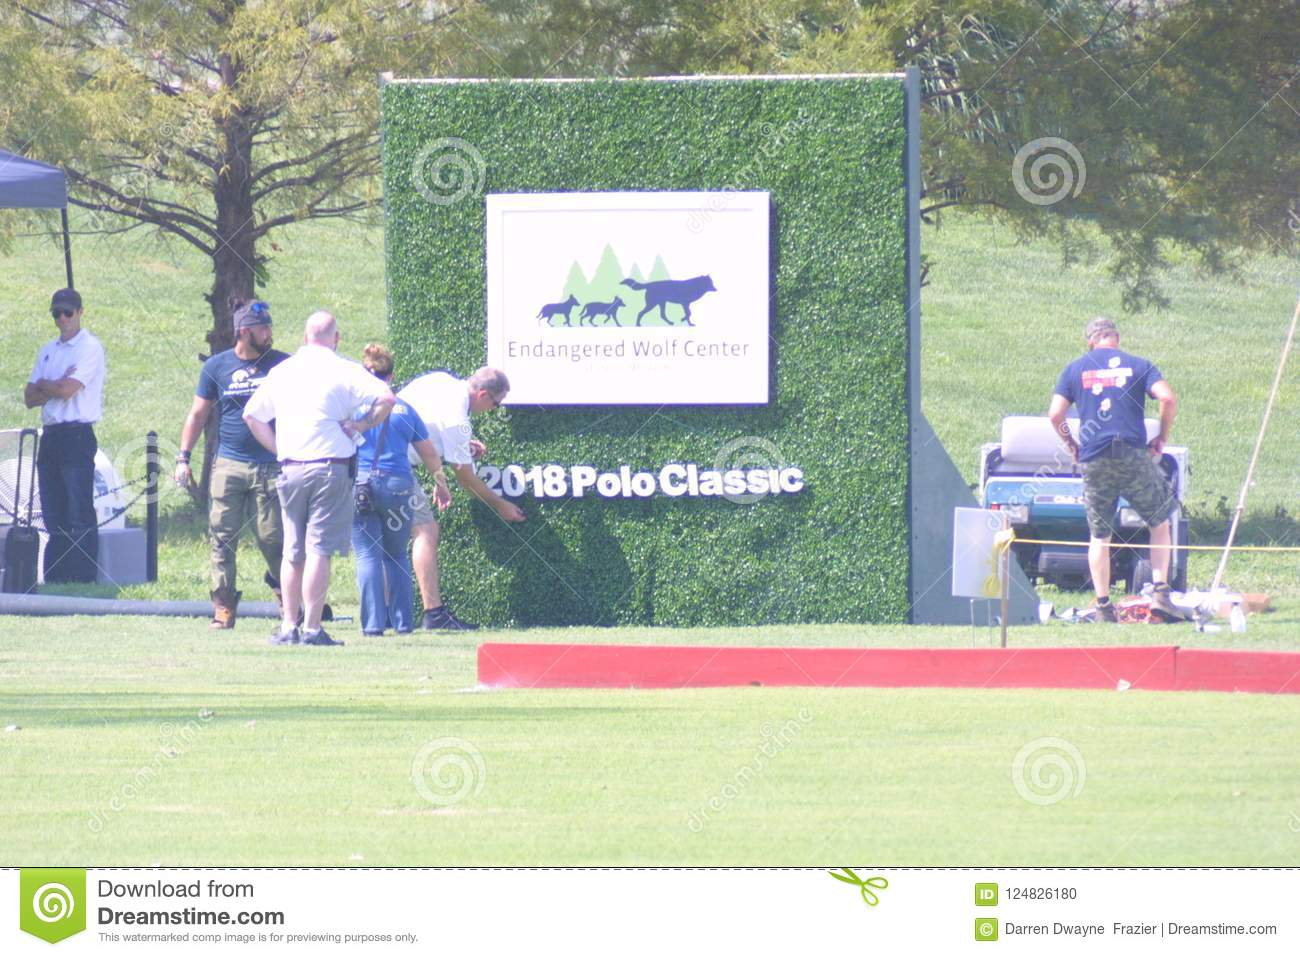 Utsatte för fara Wolf Center 2018/McGehee Polo Field